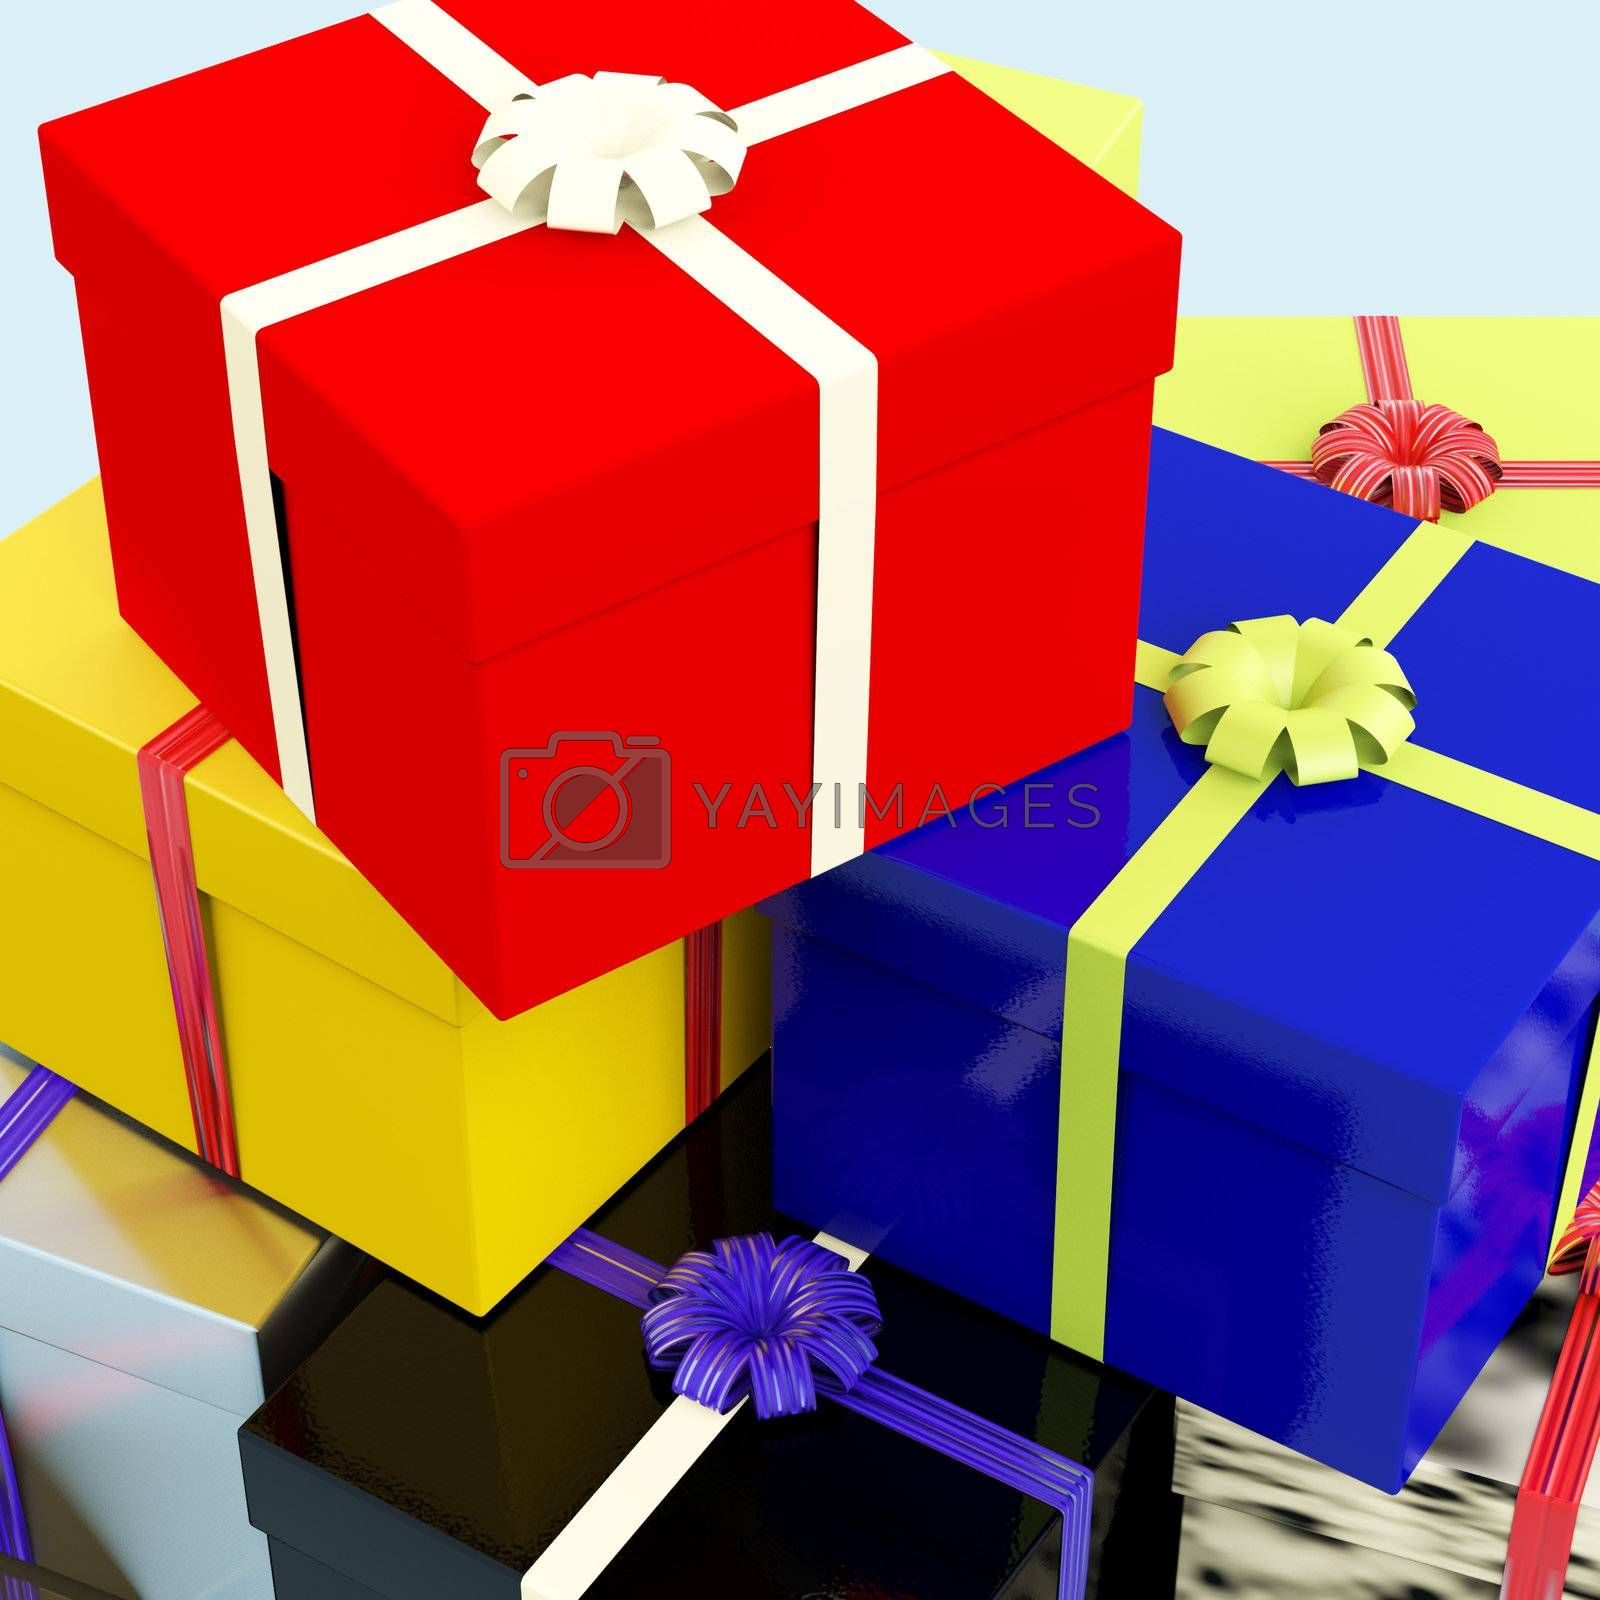 Multicolored Giftboxes   As Presents For Family Or Friends